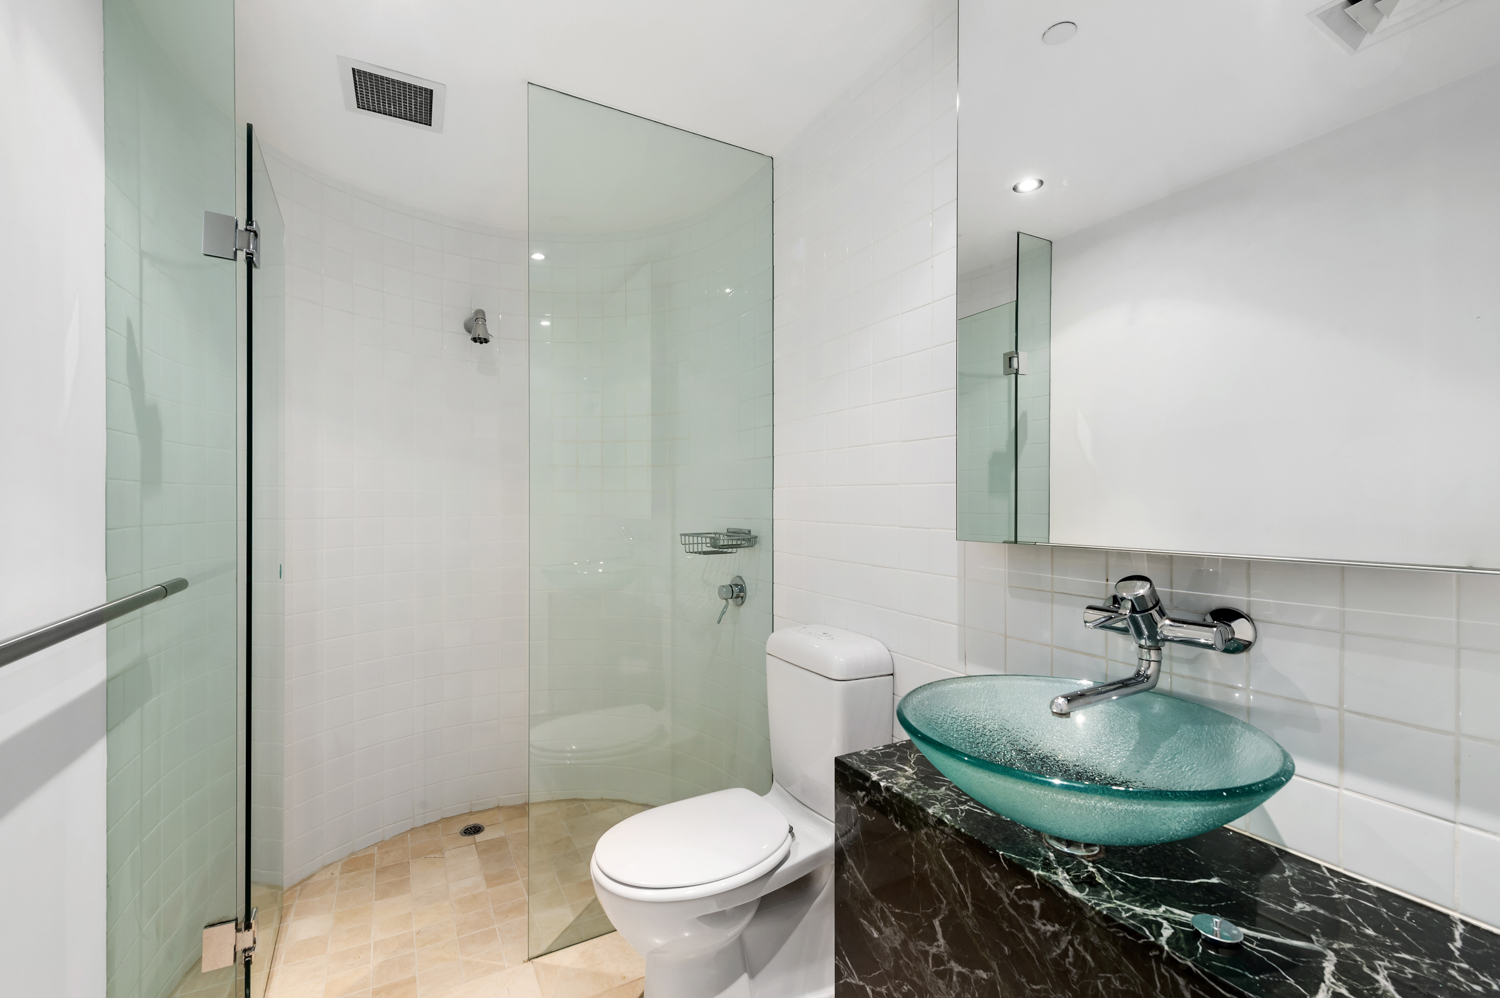 152-299-queen-street-melbourne-student-accommodation-Melbourne-Bathroom-Unilodgers